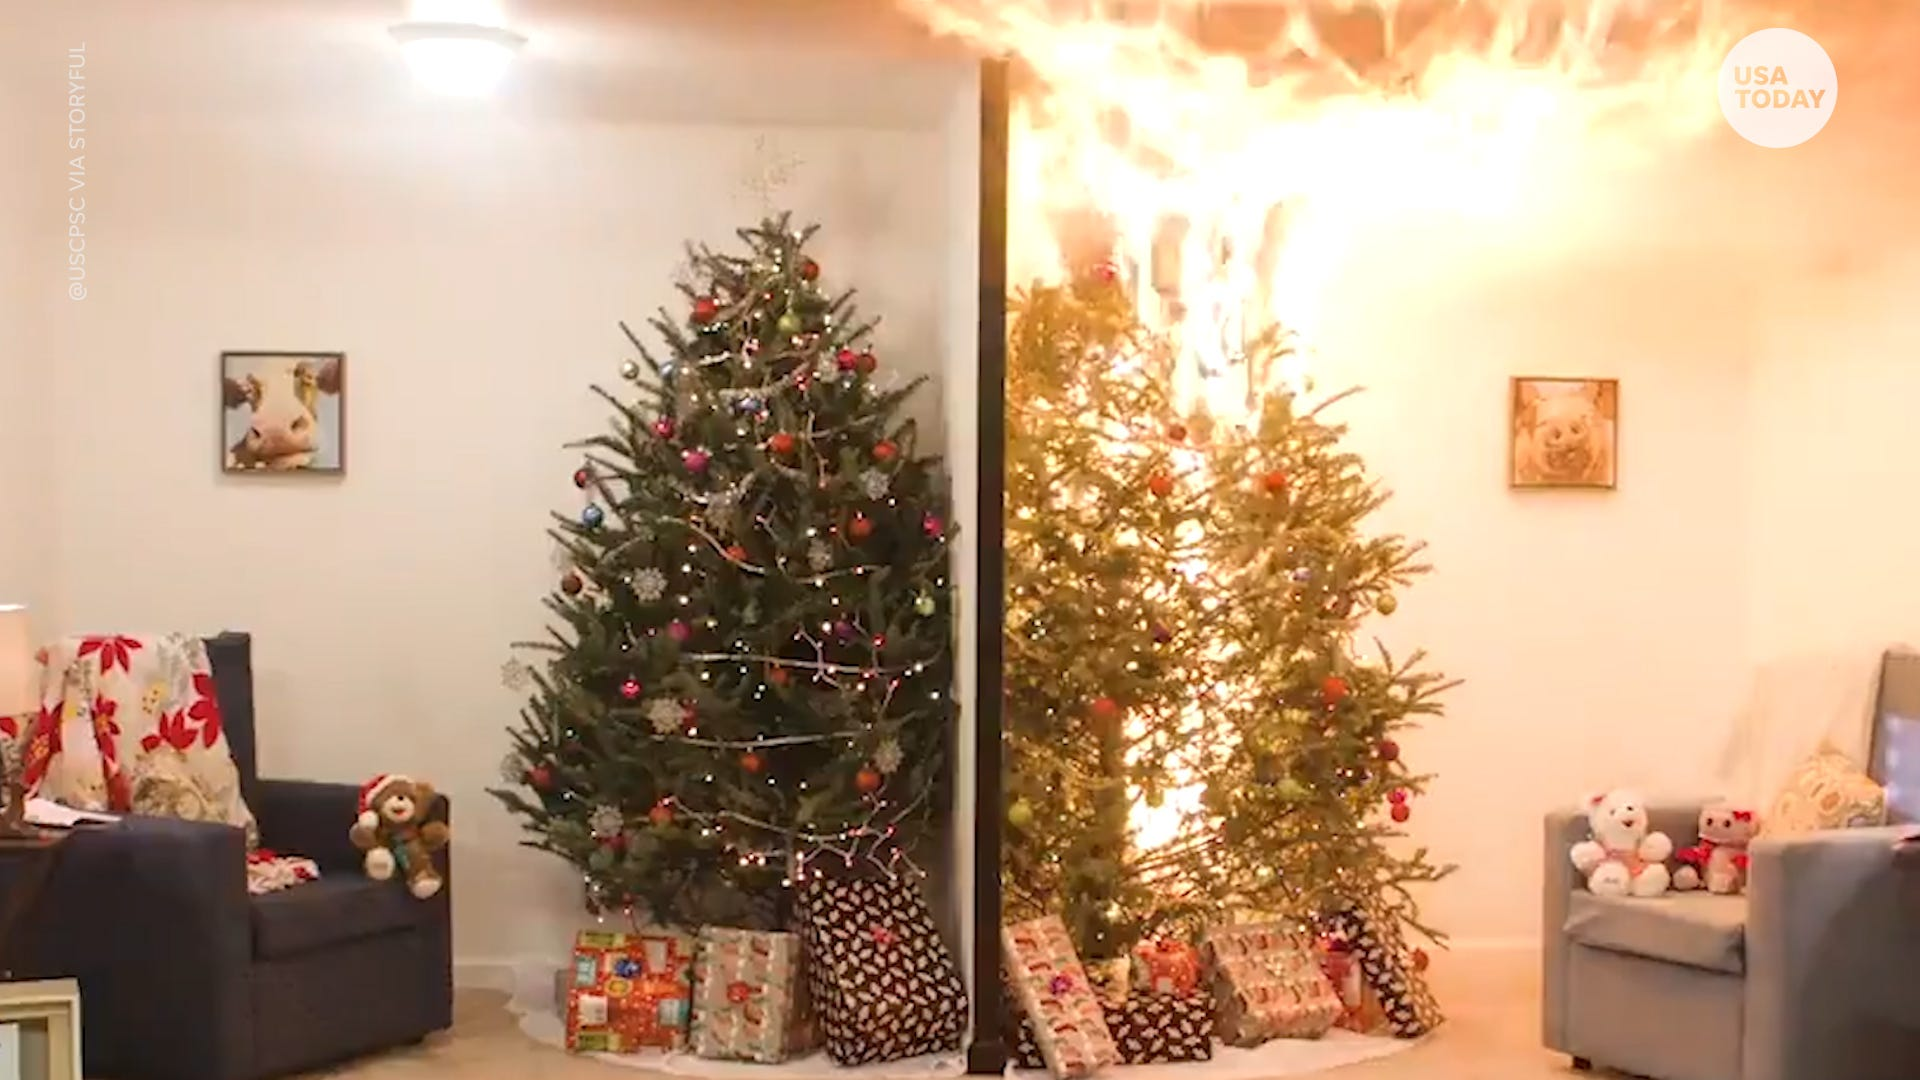 US Consumer Product Safety Commission PSA on dangers of not watering your Christmas tree